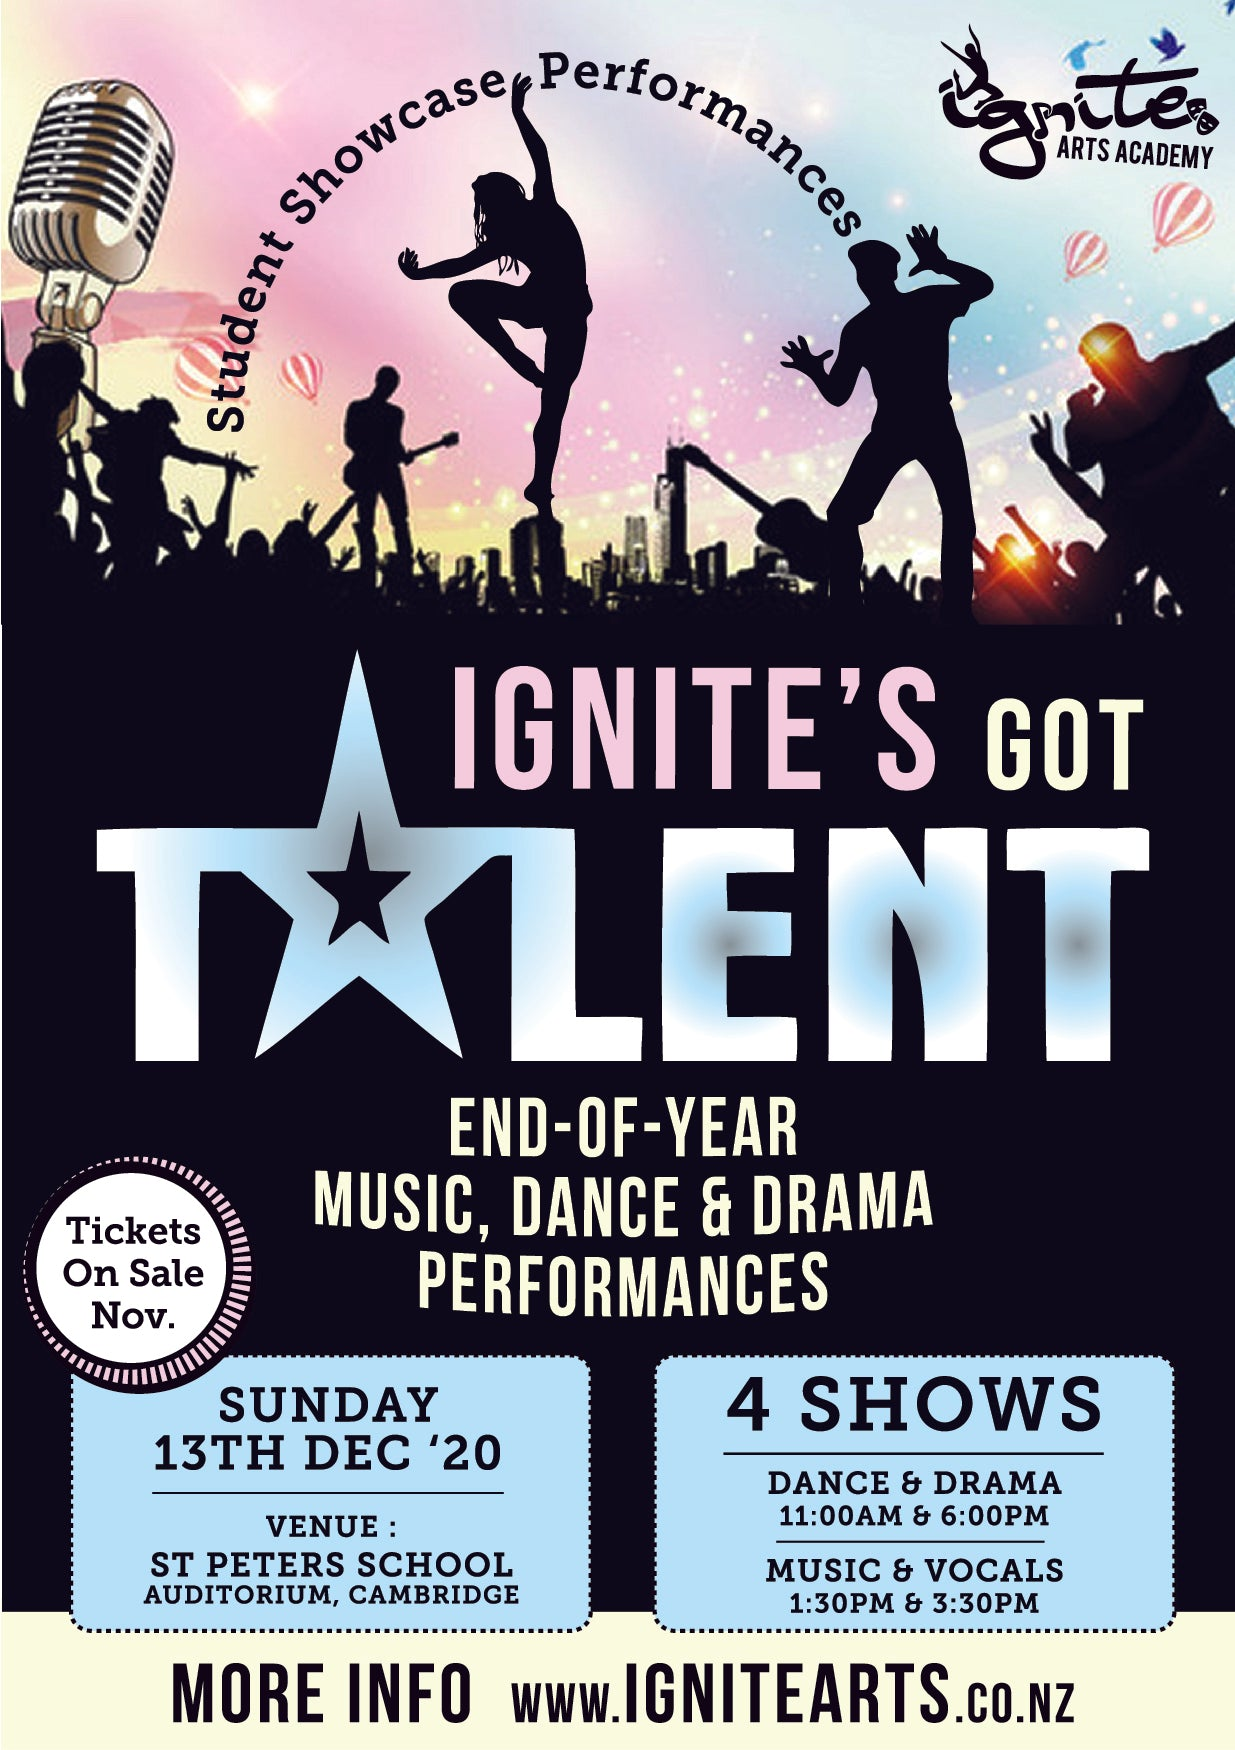 MULTI SHOW TICKETS - 1.30pm Music and 6pm Dance & Drama Showcases